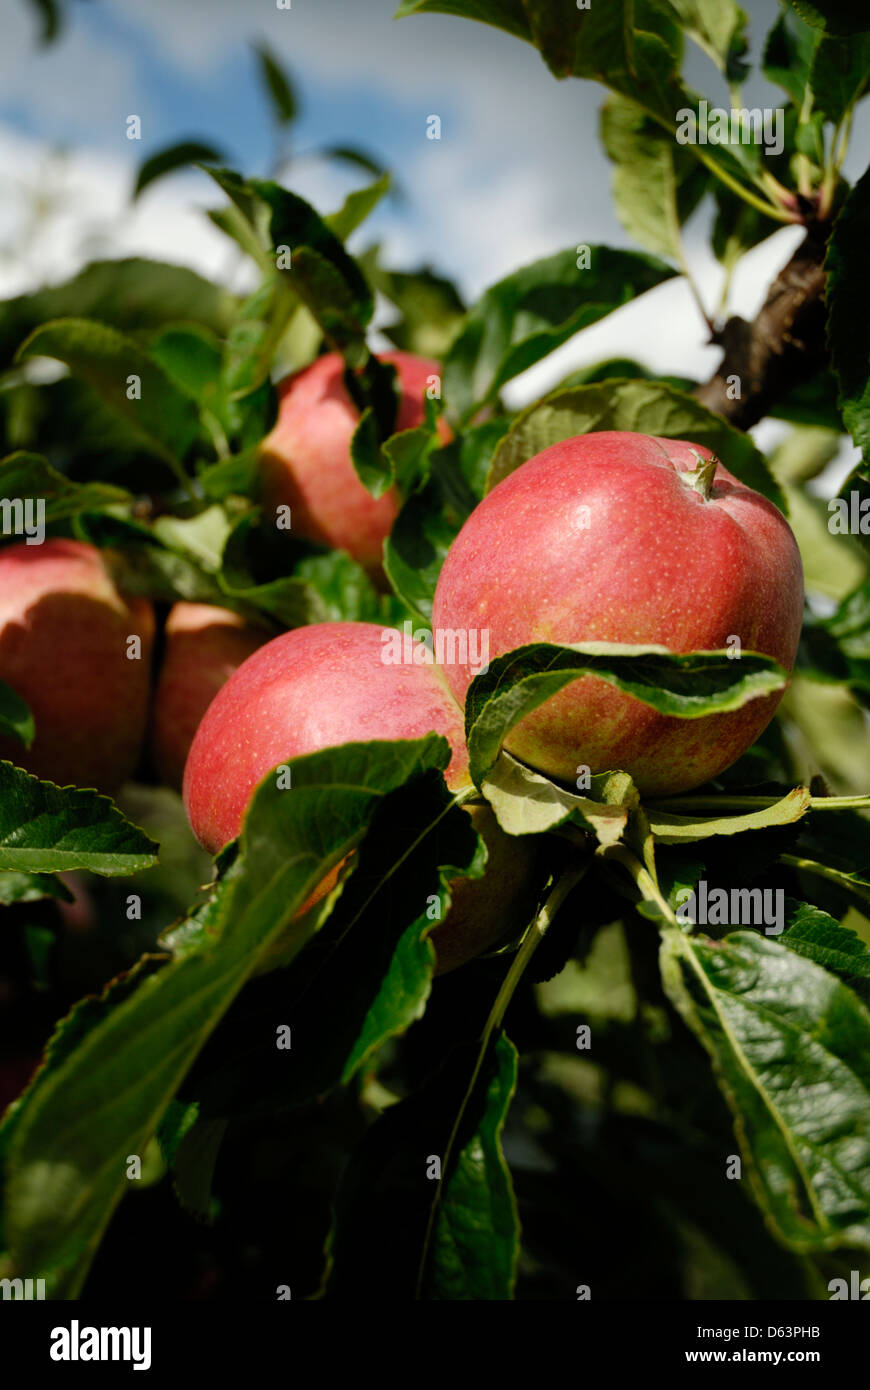 Apples growing on branch of tree in Cobham, Kent, England, Britain, UK, - Stock Image